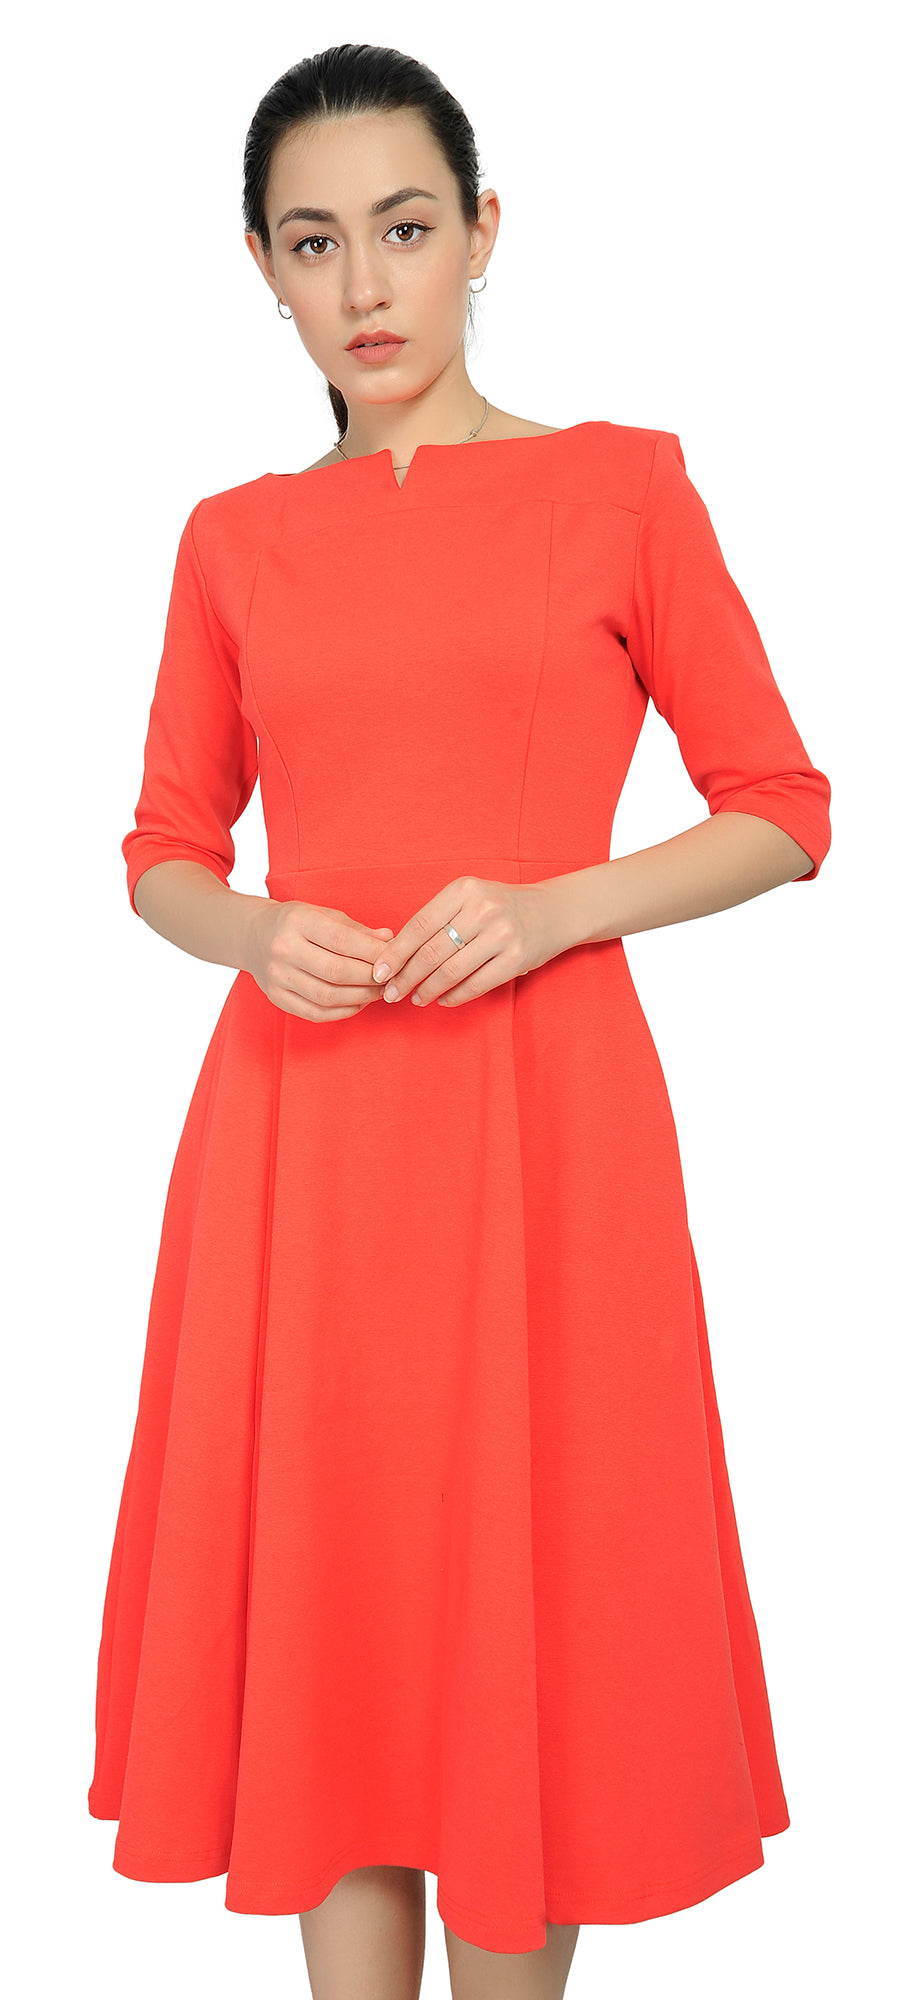 Marycrafts Women's Fit Flare Tea Midi Dress For Office Business Work